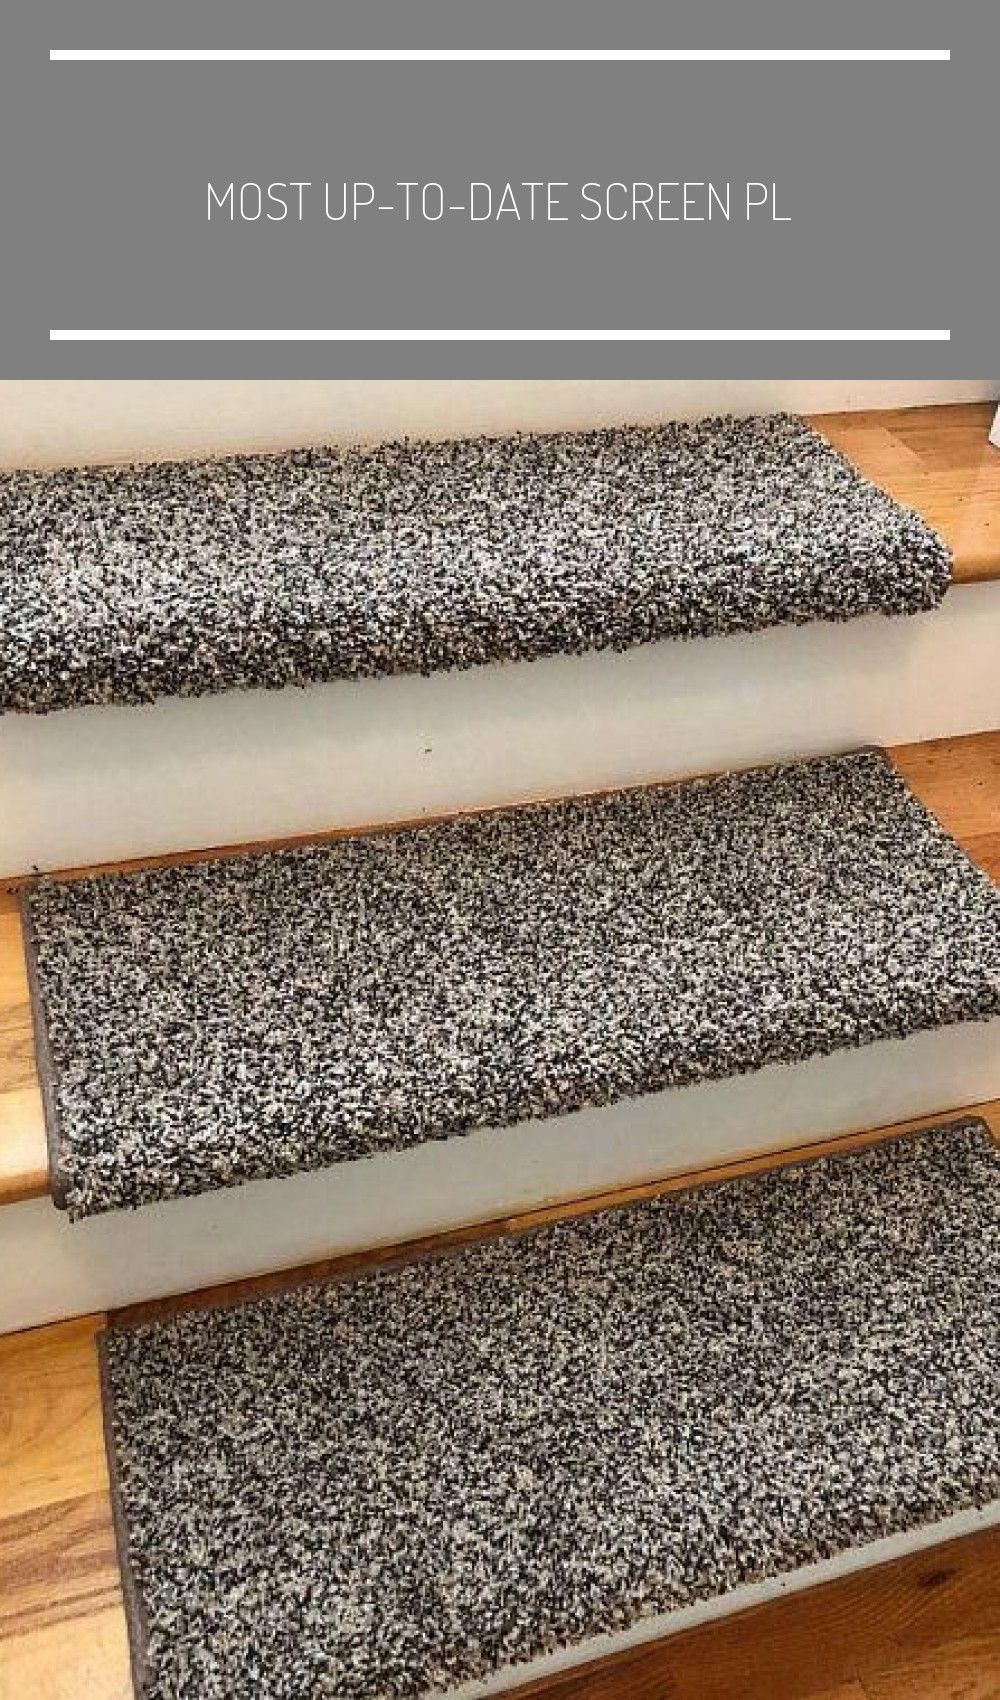 Most up-to-date Screen plush Carpet Stairs Thoughts One of many fastest approach ... ,  #approach #carpet #darkcarpetstairs #fastest #plush #Screen #stairs #Thoughts #uptodate